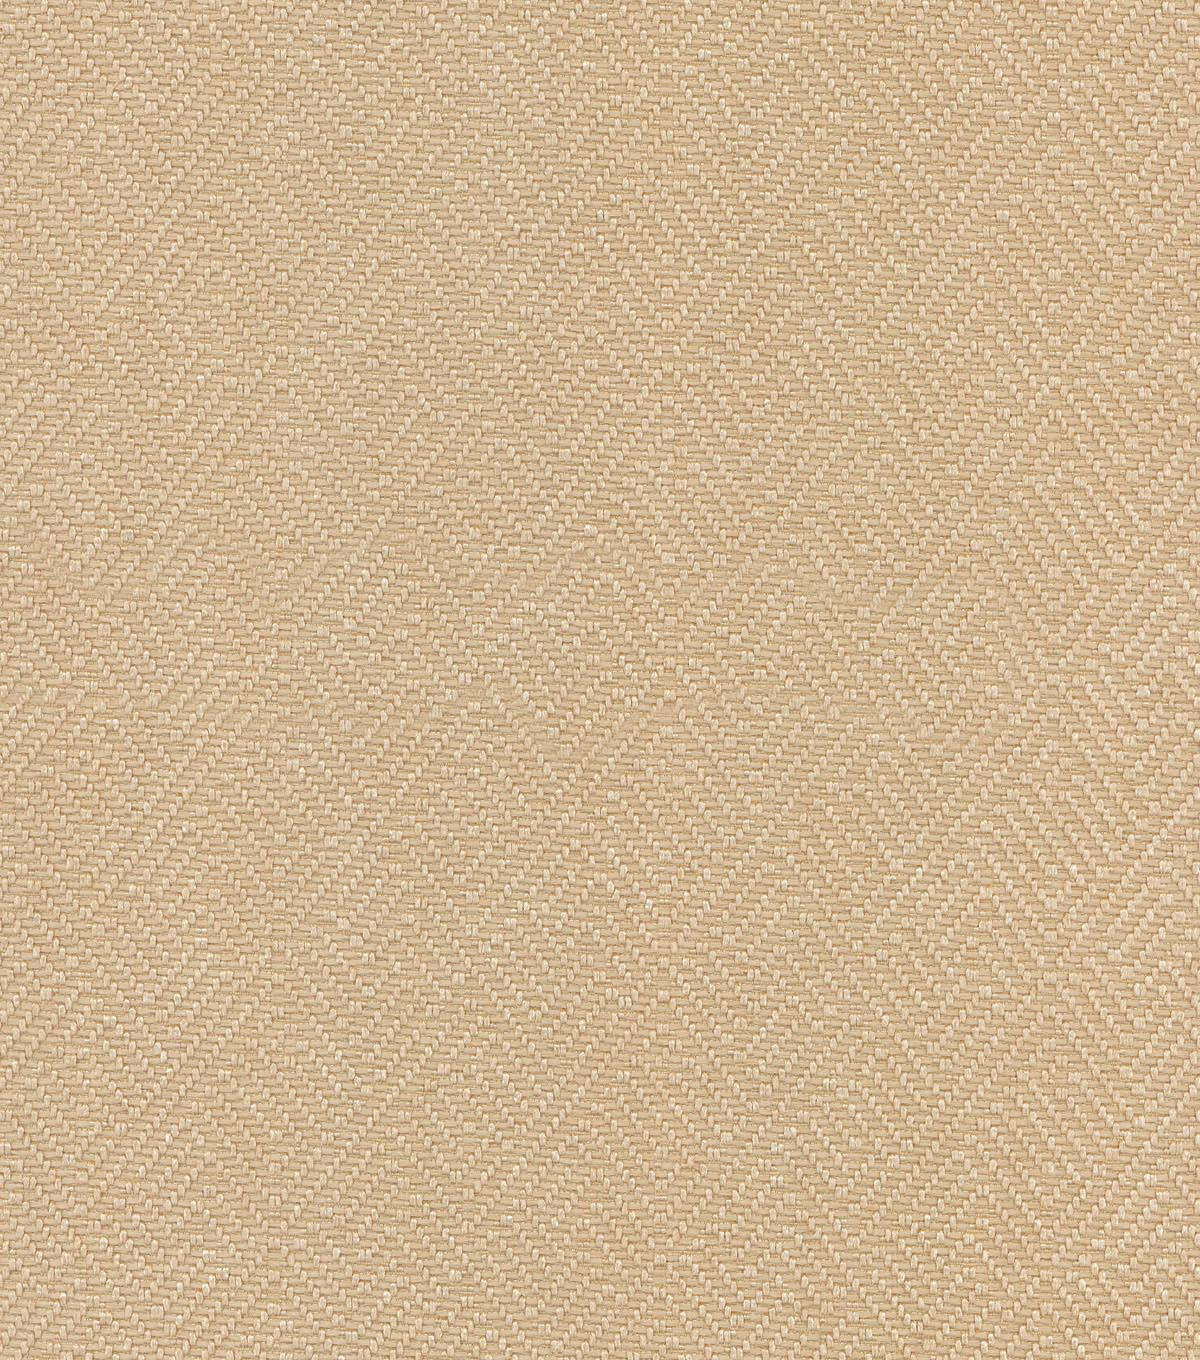 Home Decor 8\u0022x8\u0022 Swatch Fabric-PK Lifestyles Basketry Khaki